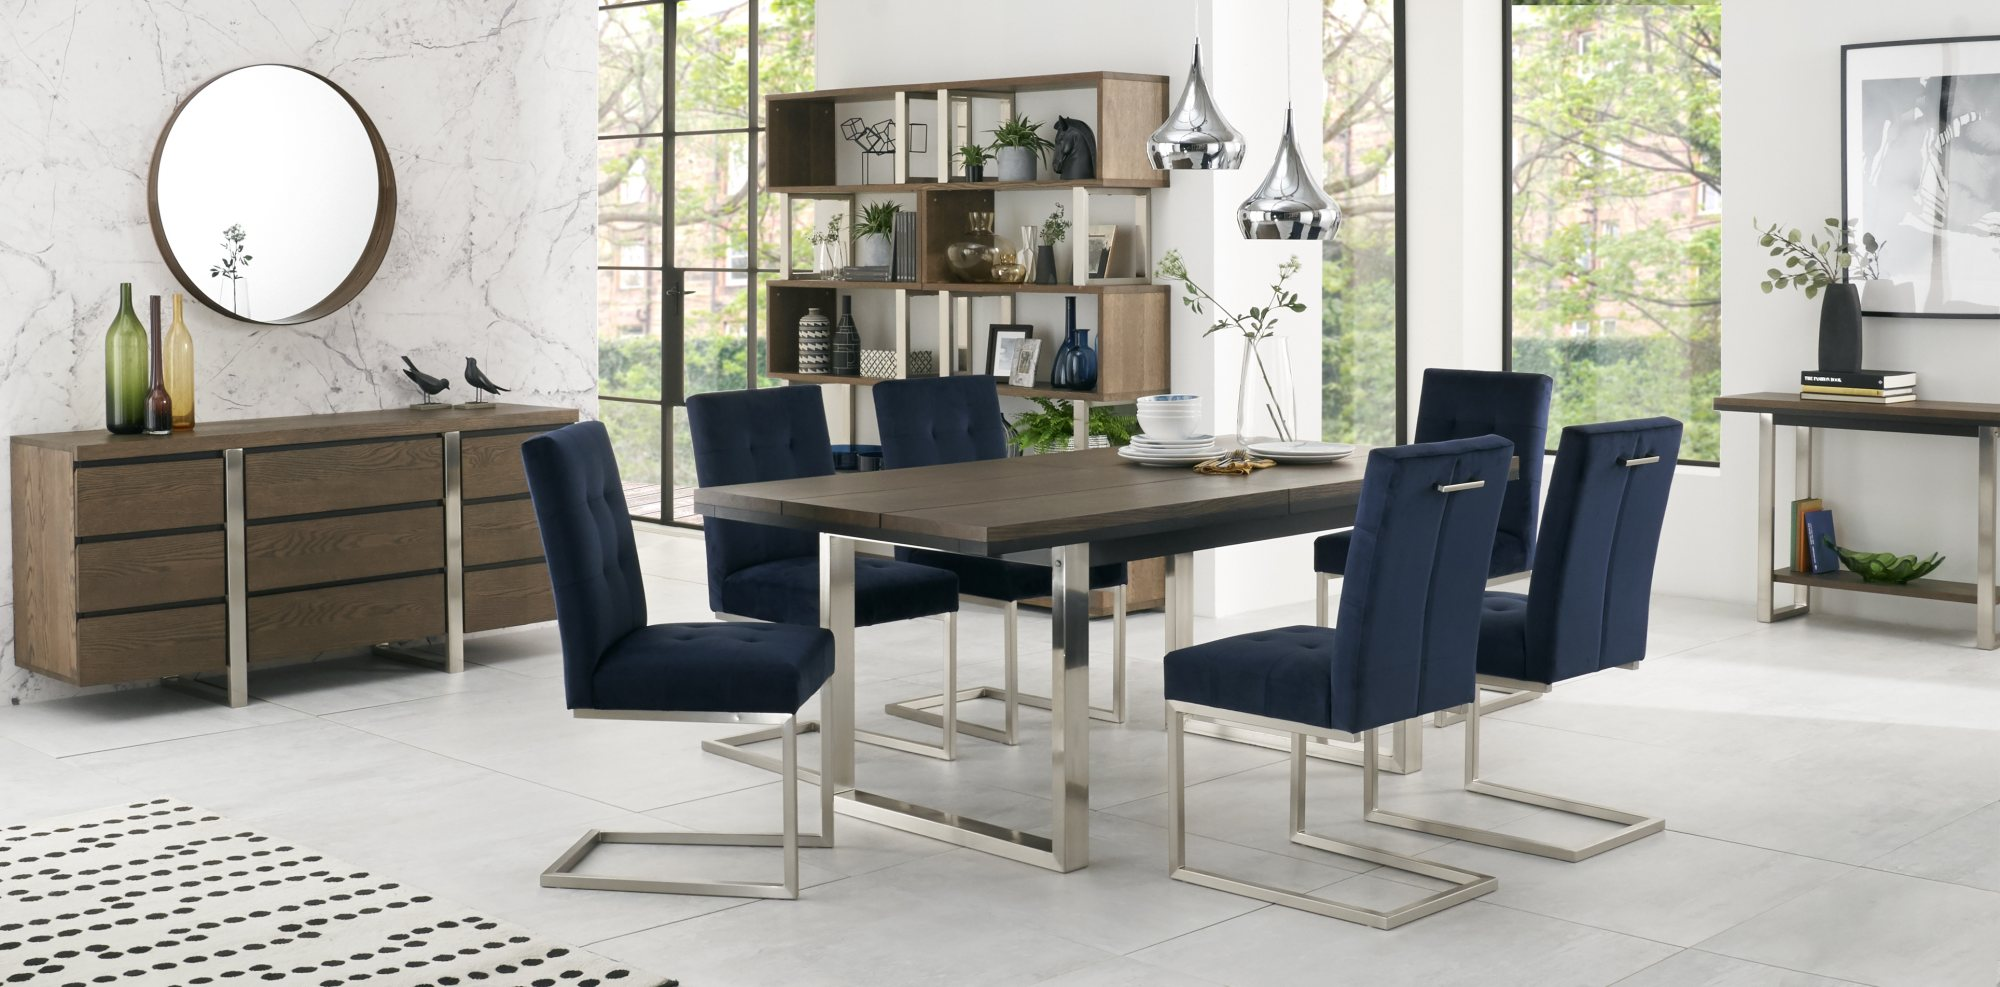 BRINDISI DINING SET WITH NAVY VELVET CANTER CHAIRS - L190cm EXTENDING TO L240cm